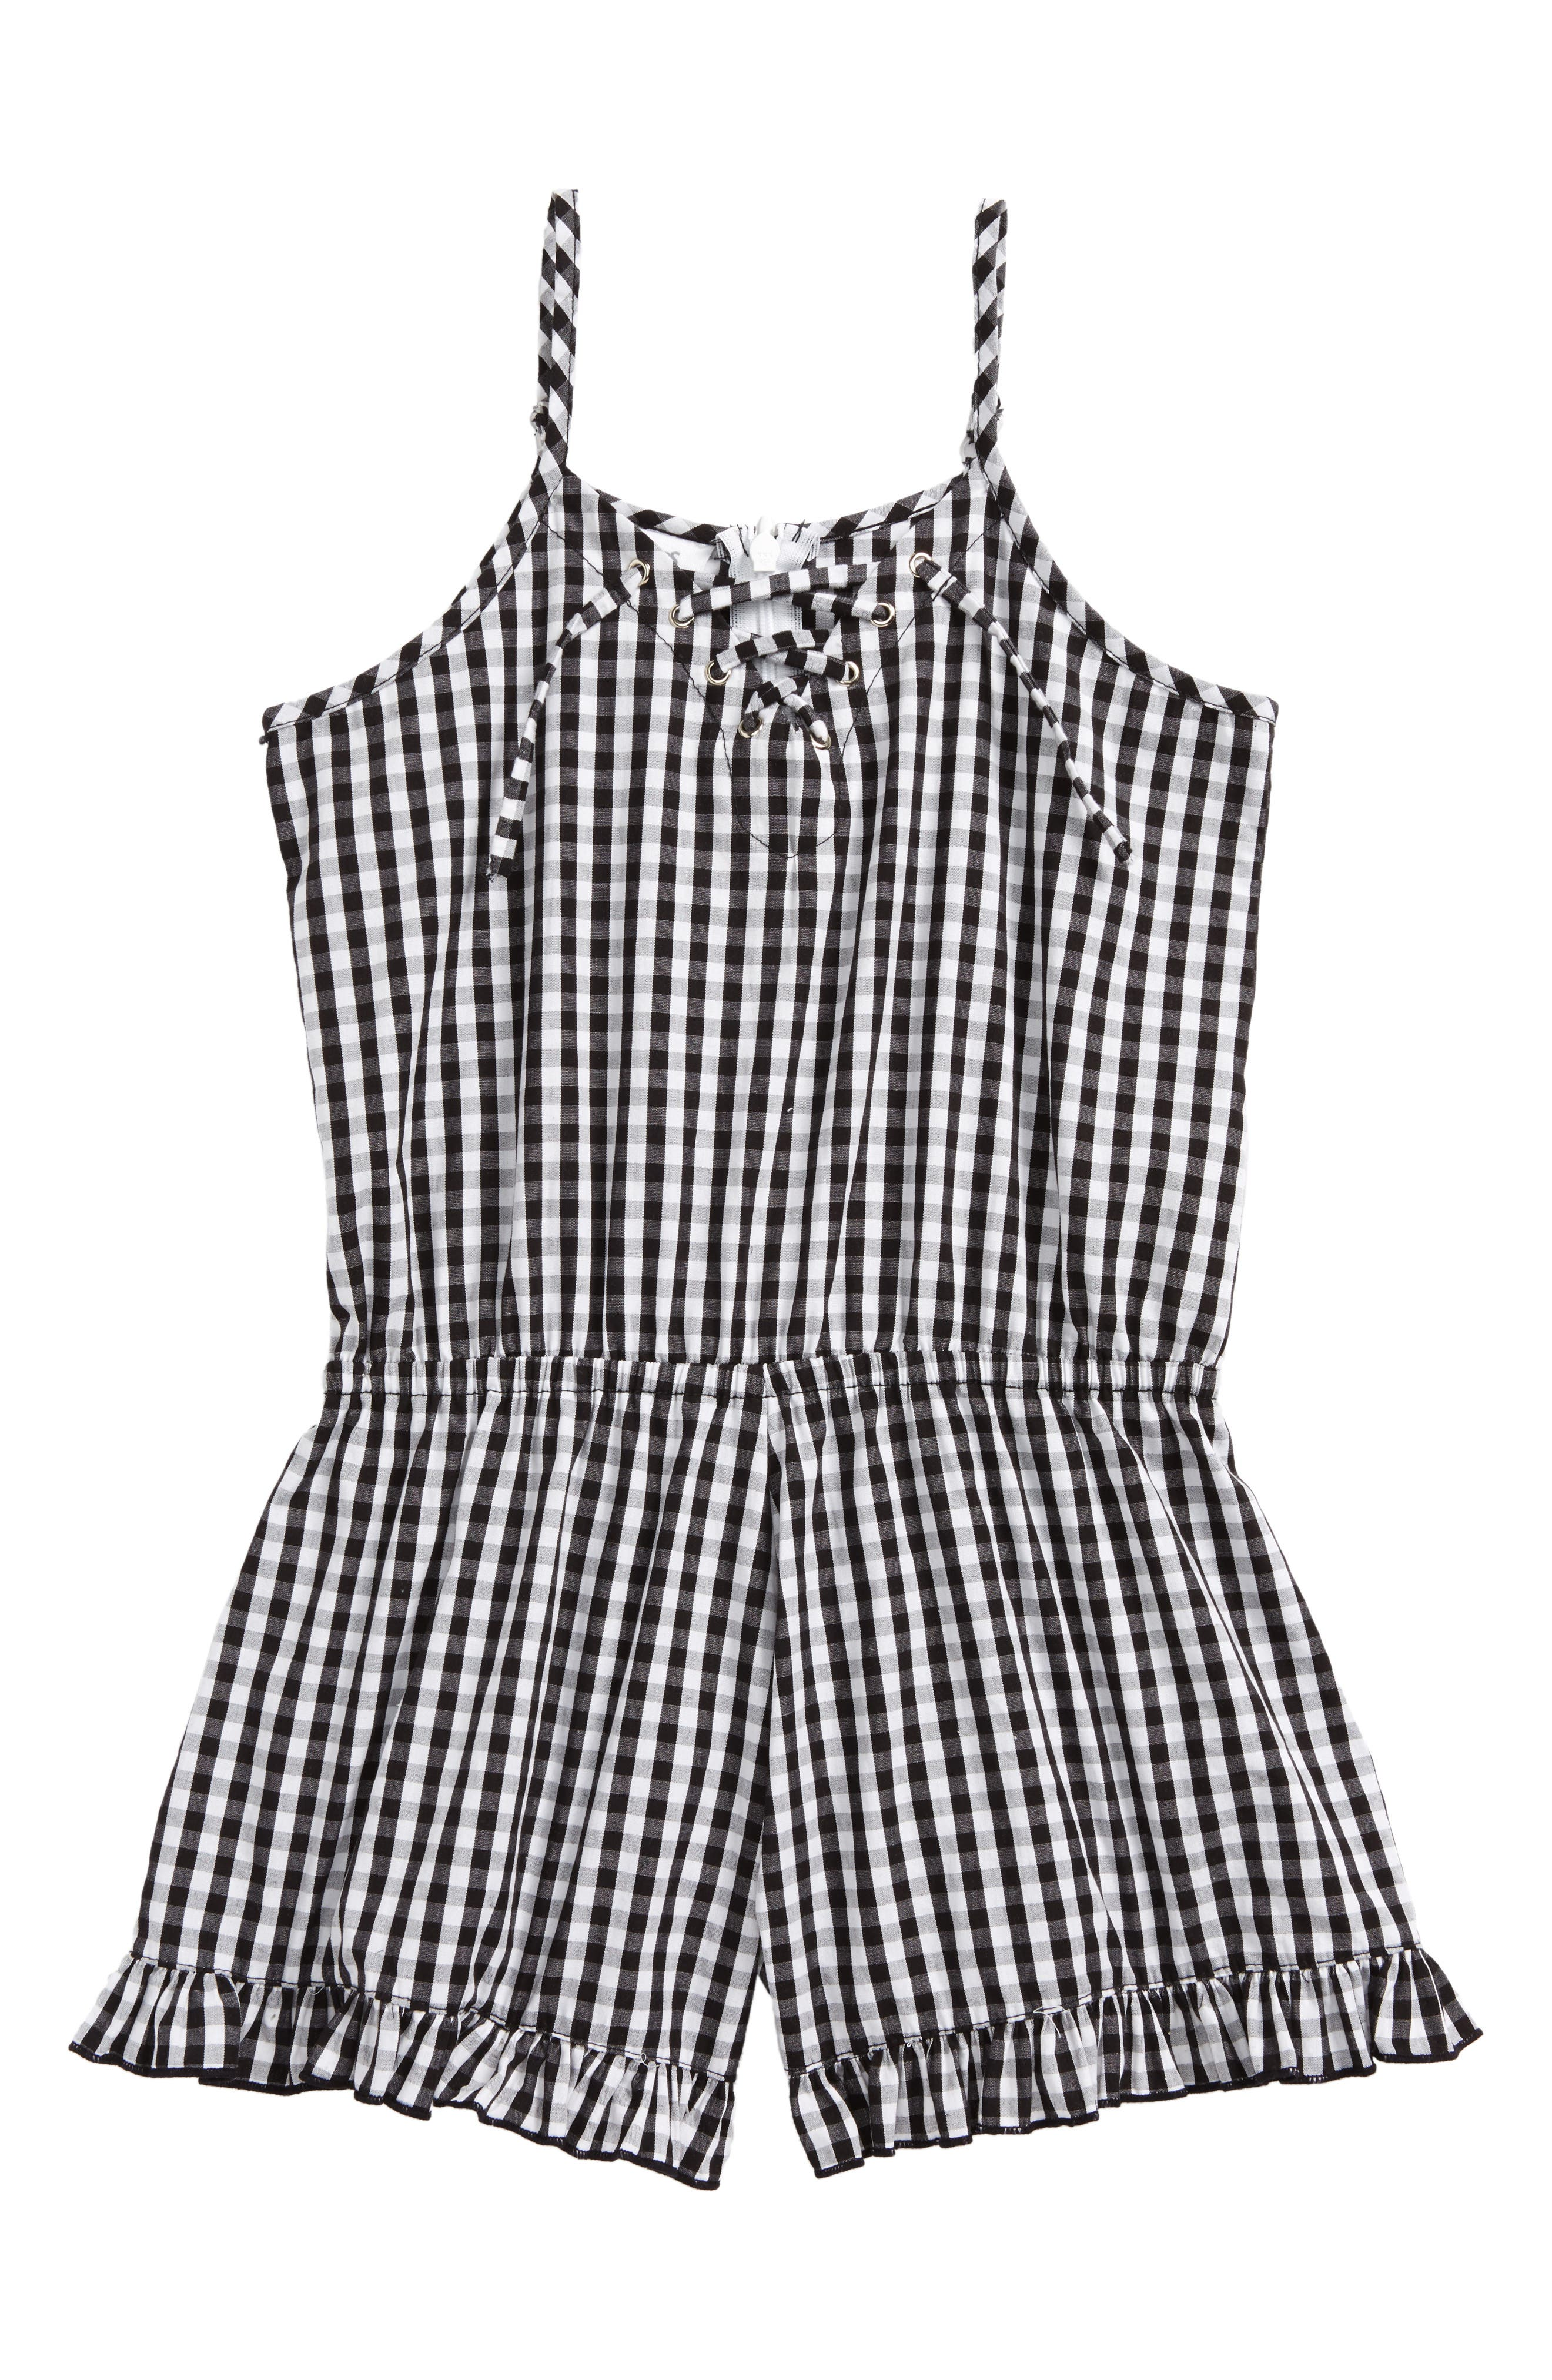 Gingham Romper,                         Main,                         color, Black-Whbcgm-Ginggham-Whbcgm